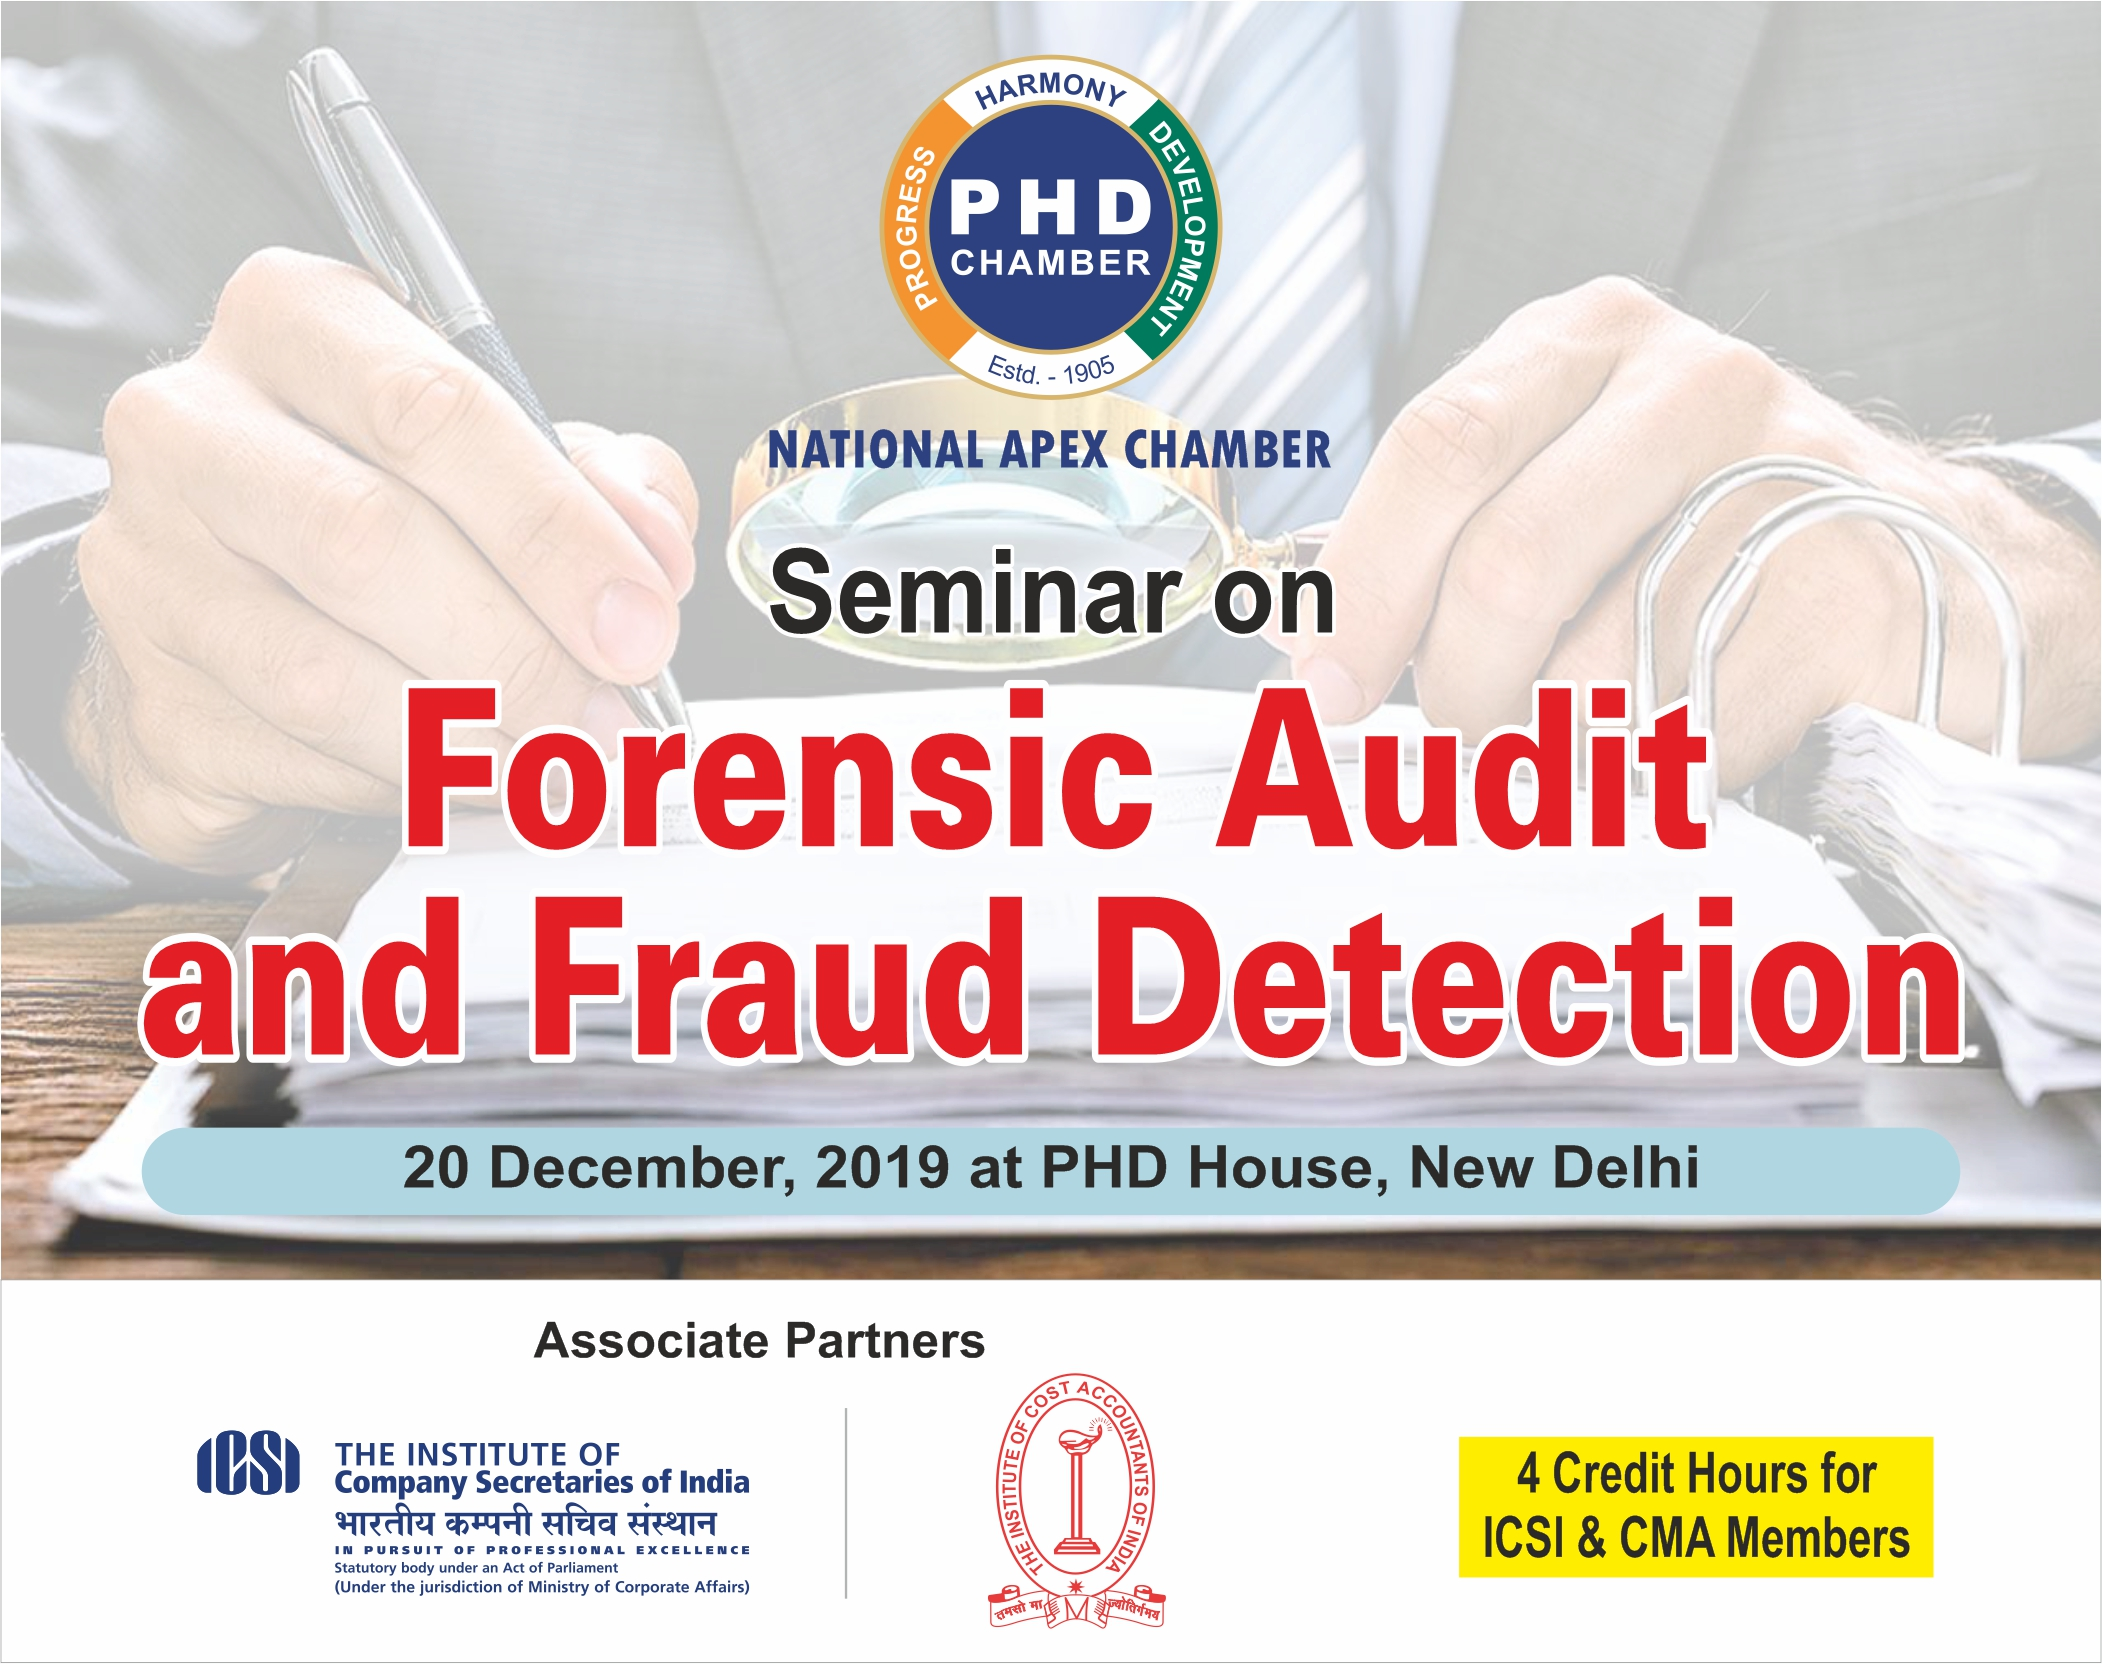 Seminar on Forensic Audit & Fraud Detection